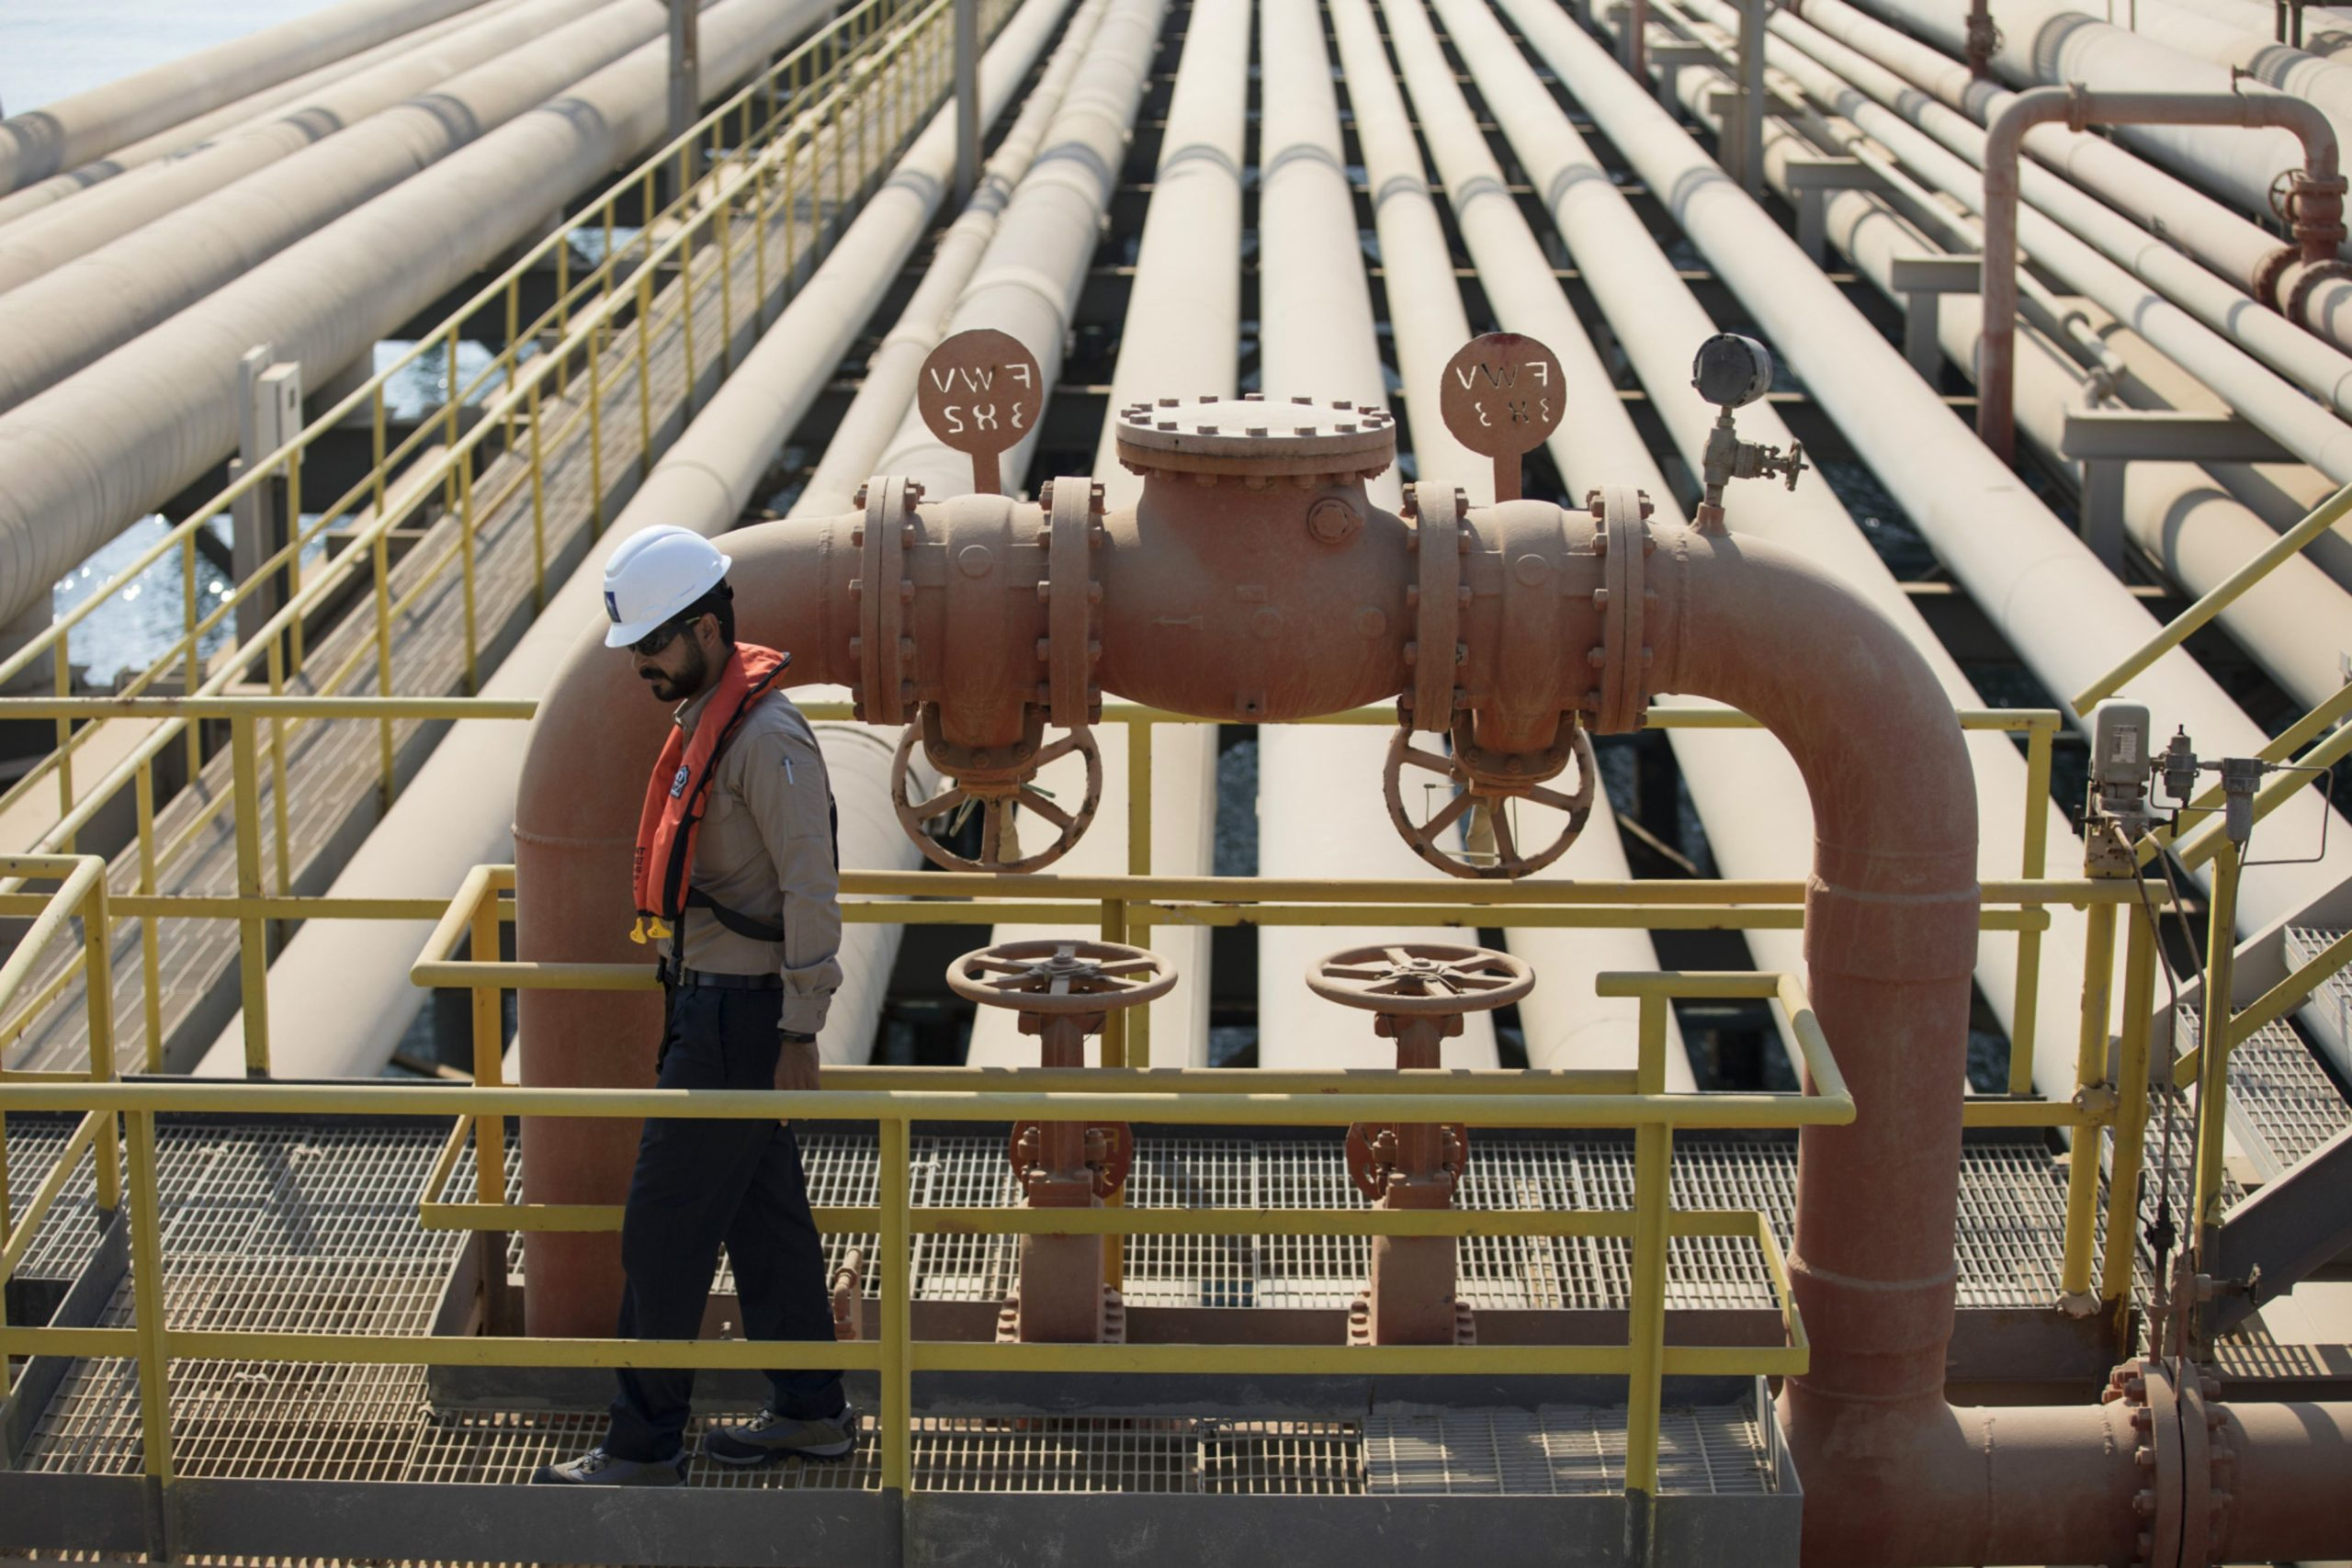 An employee inspects pipes used for landing and unloading crude and refined oil at the North Pier Terminal, operated by Saudi Aramco, in Ras Tanura, Saudi Arabia, on Monday, Oct. 1, 2018.  Photographer: Simon Dawson/Bloomberg